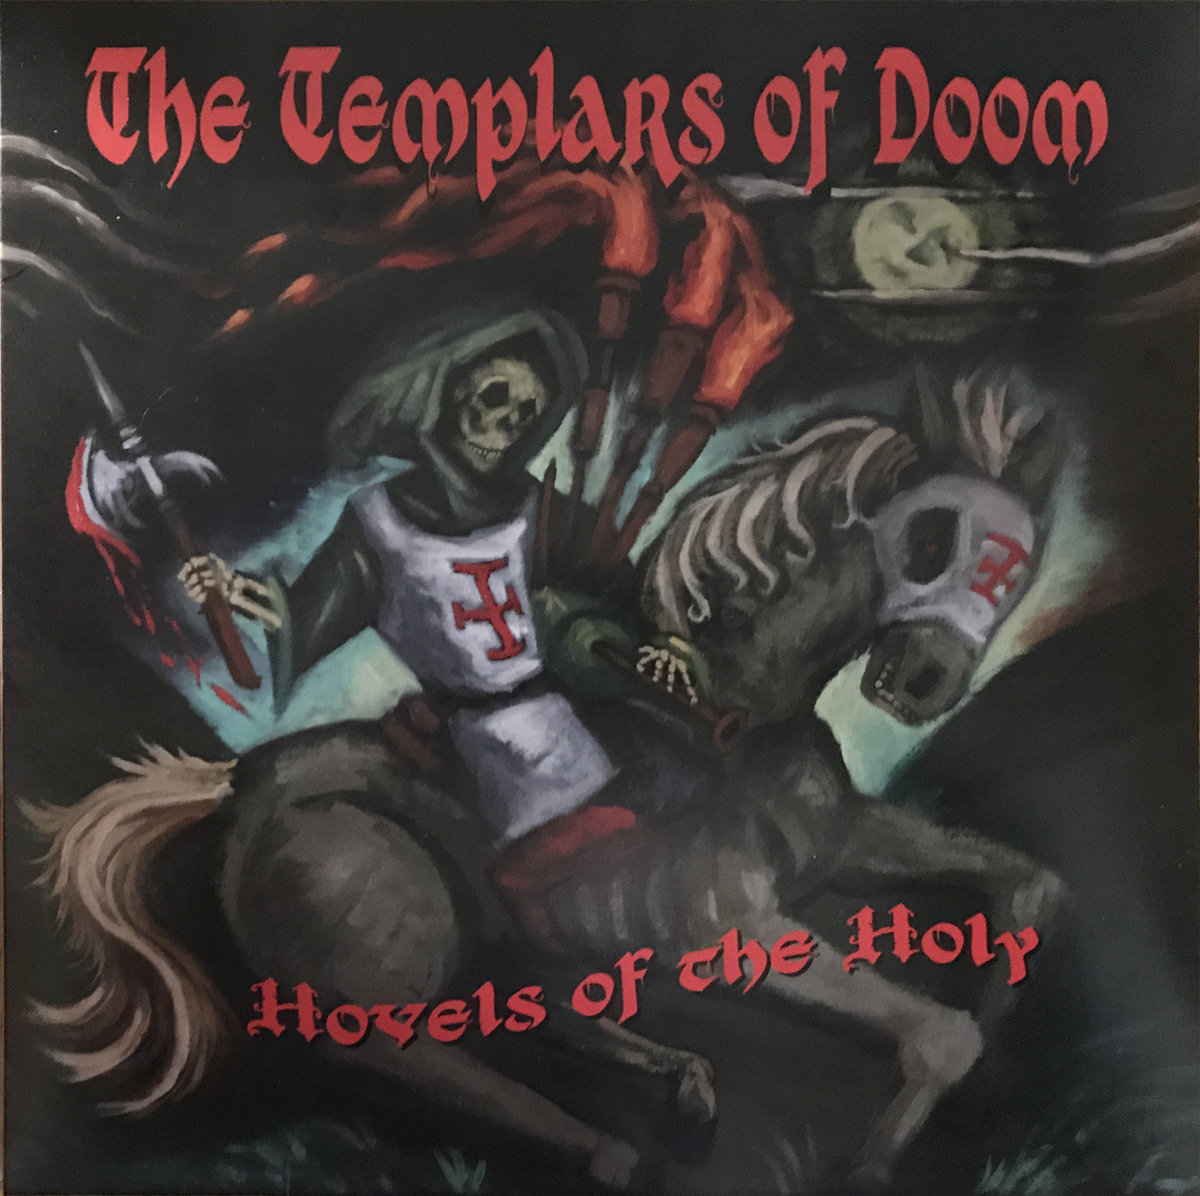 Hovels of the Holy | The Templars of Doom